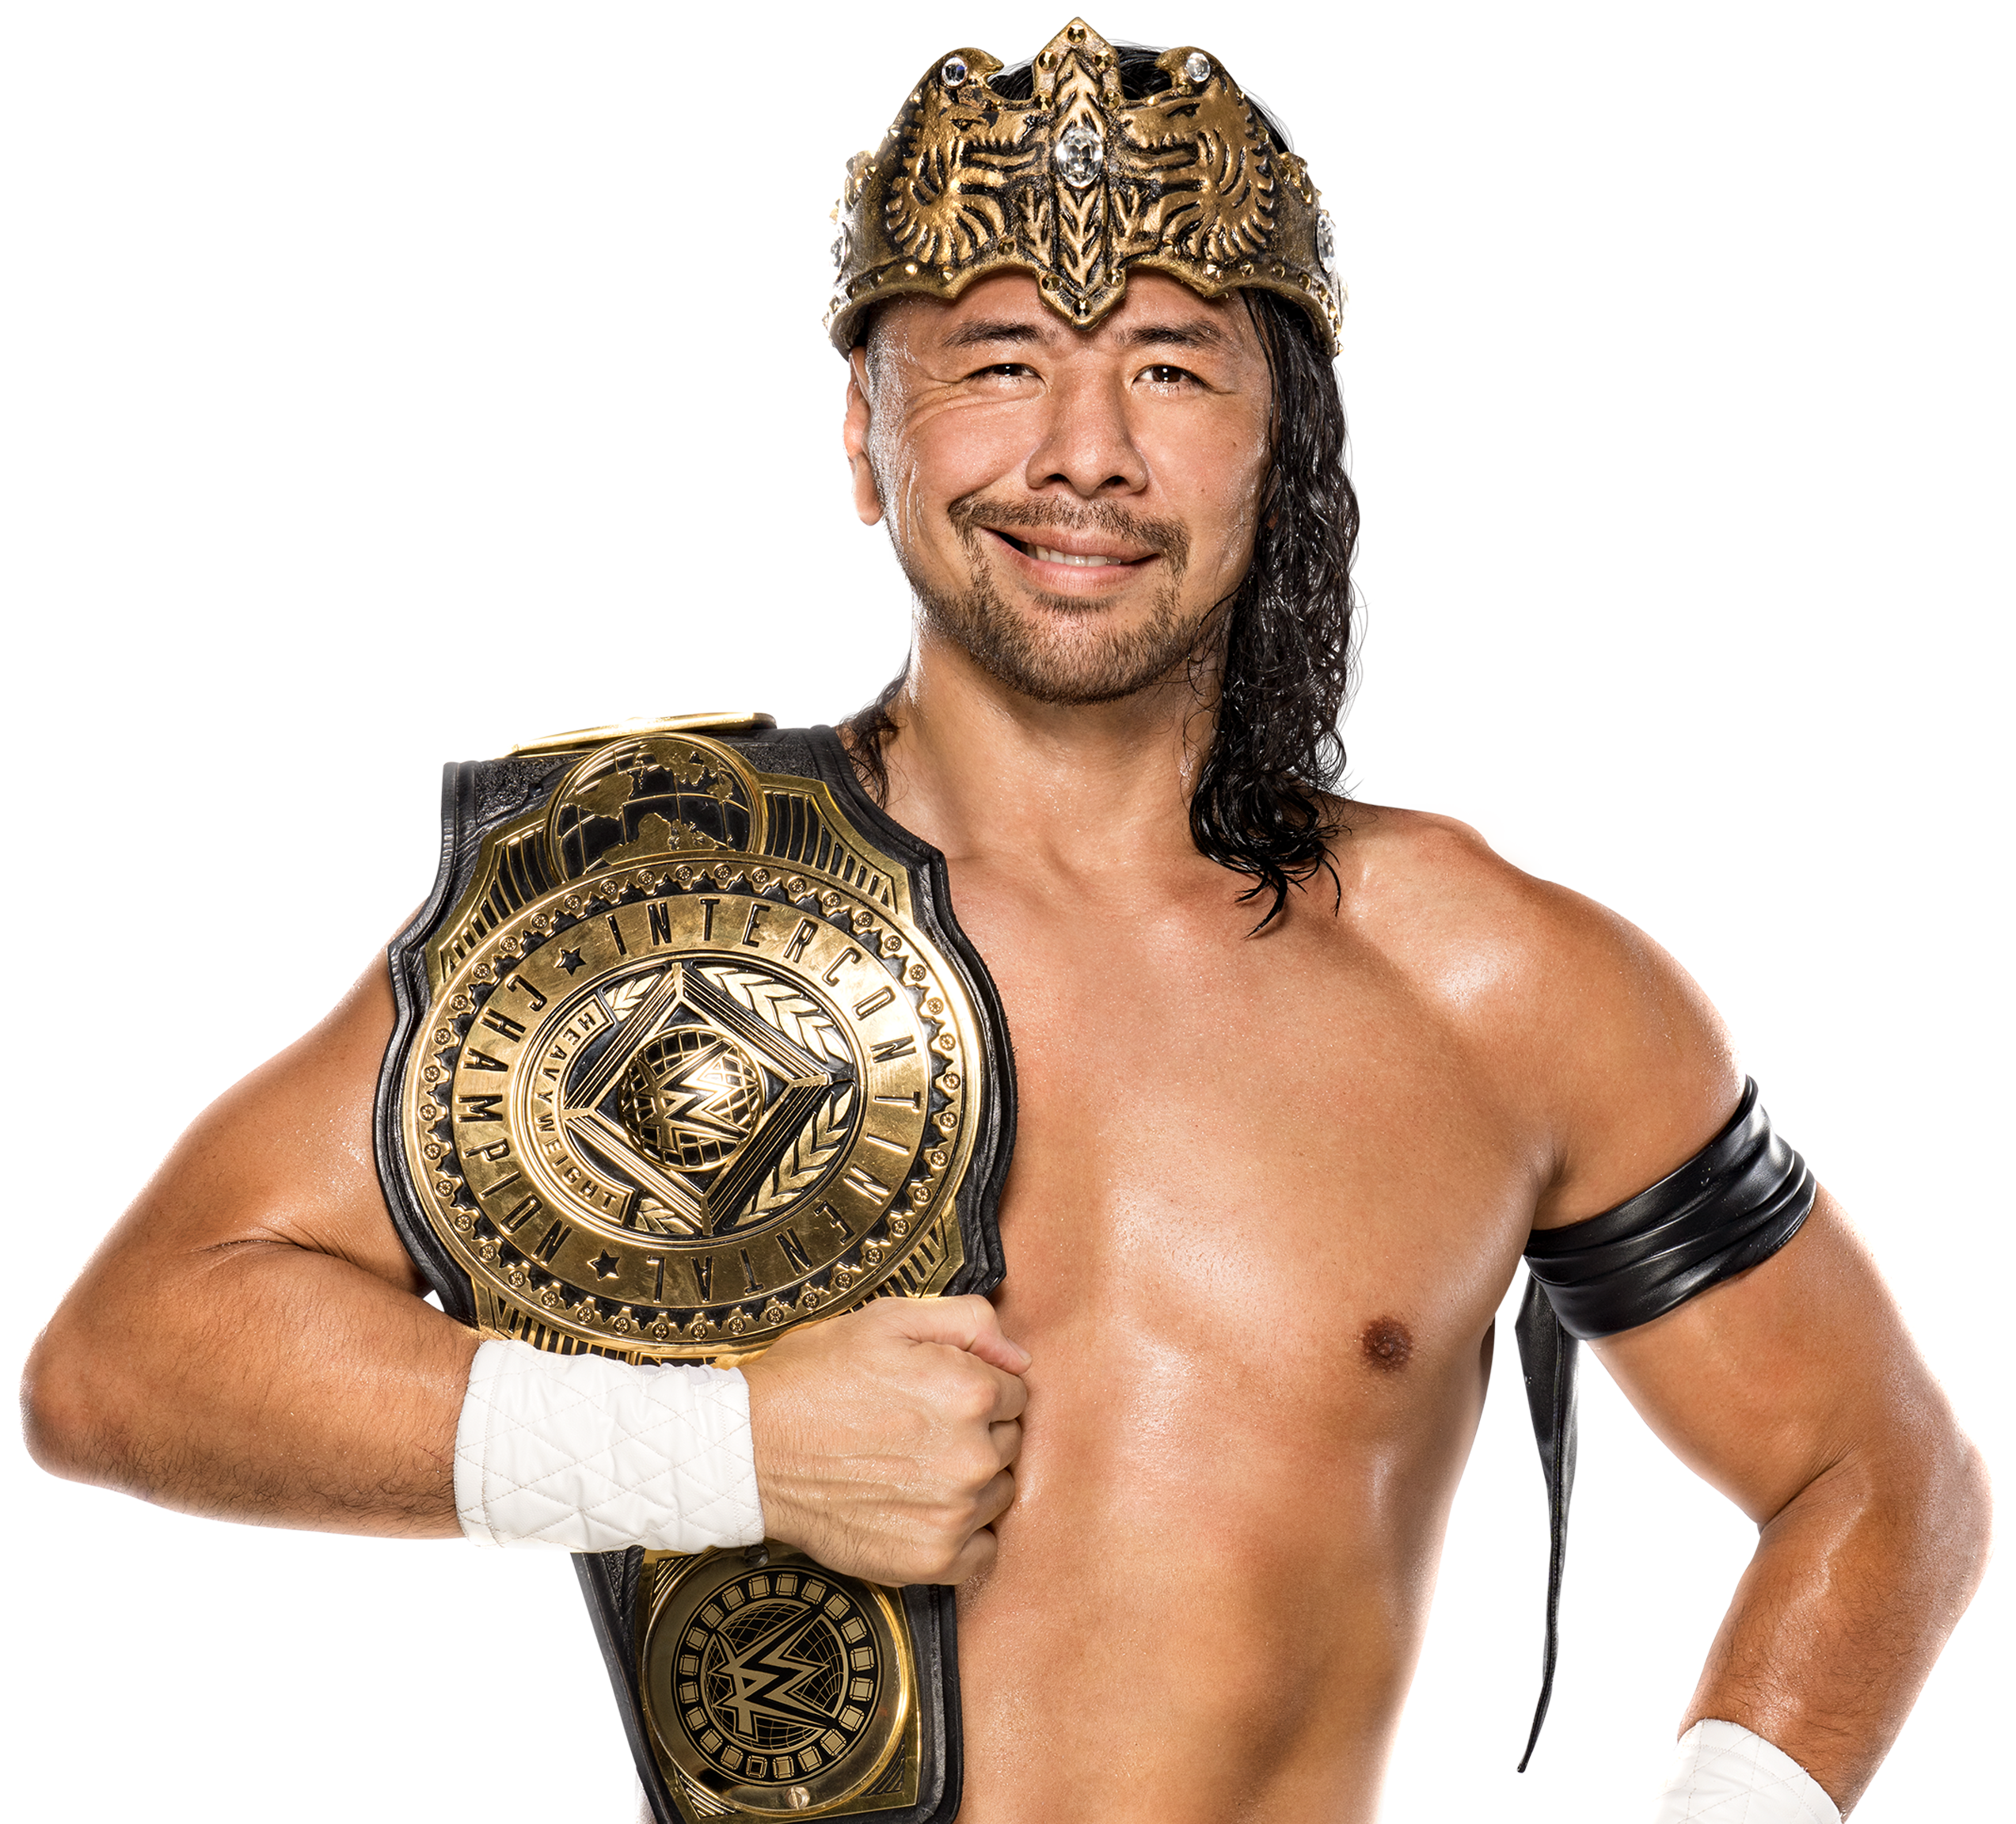 Shinuske Nakamura 2021 Official IC Champ Render by WWEDESIGNERS on DeviantArt